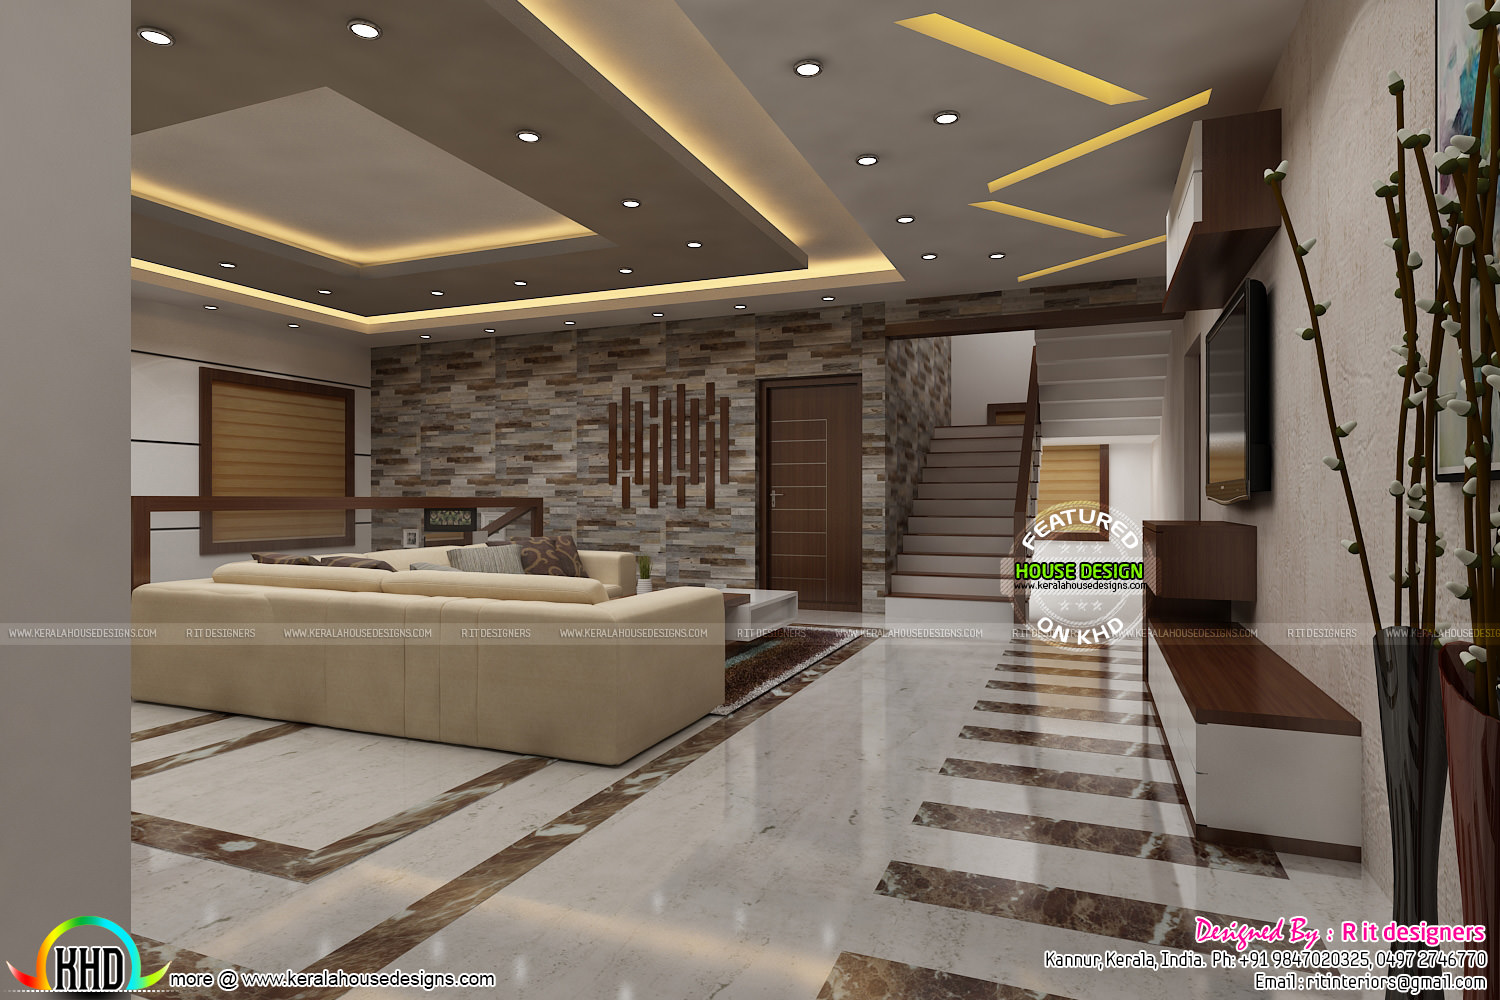 Most modern kerala living room interior kerala home for Modern drawing room interior design